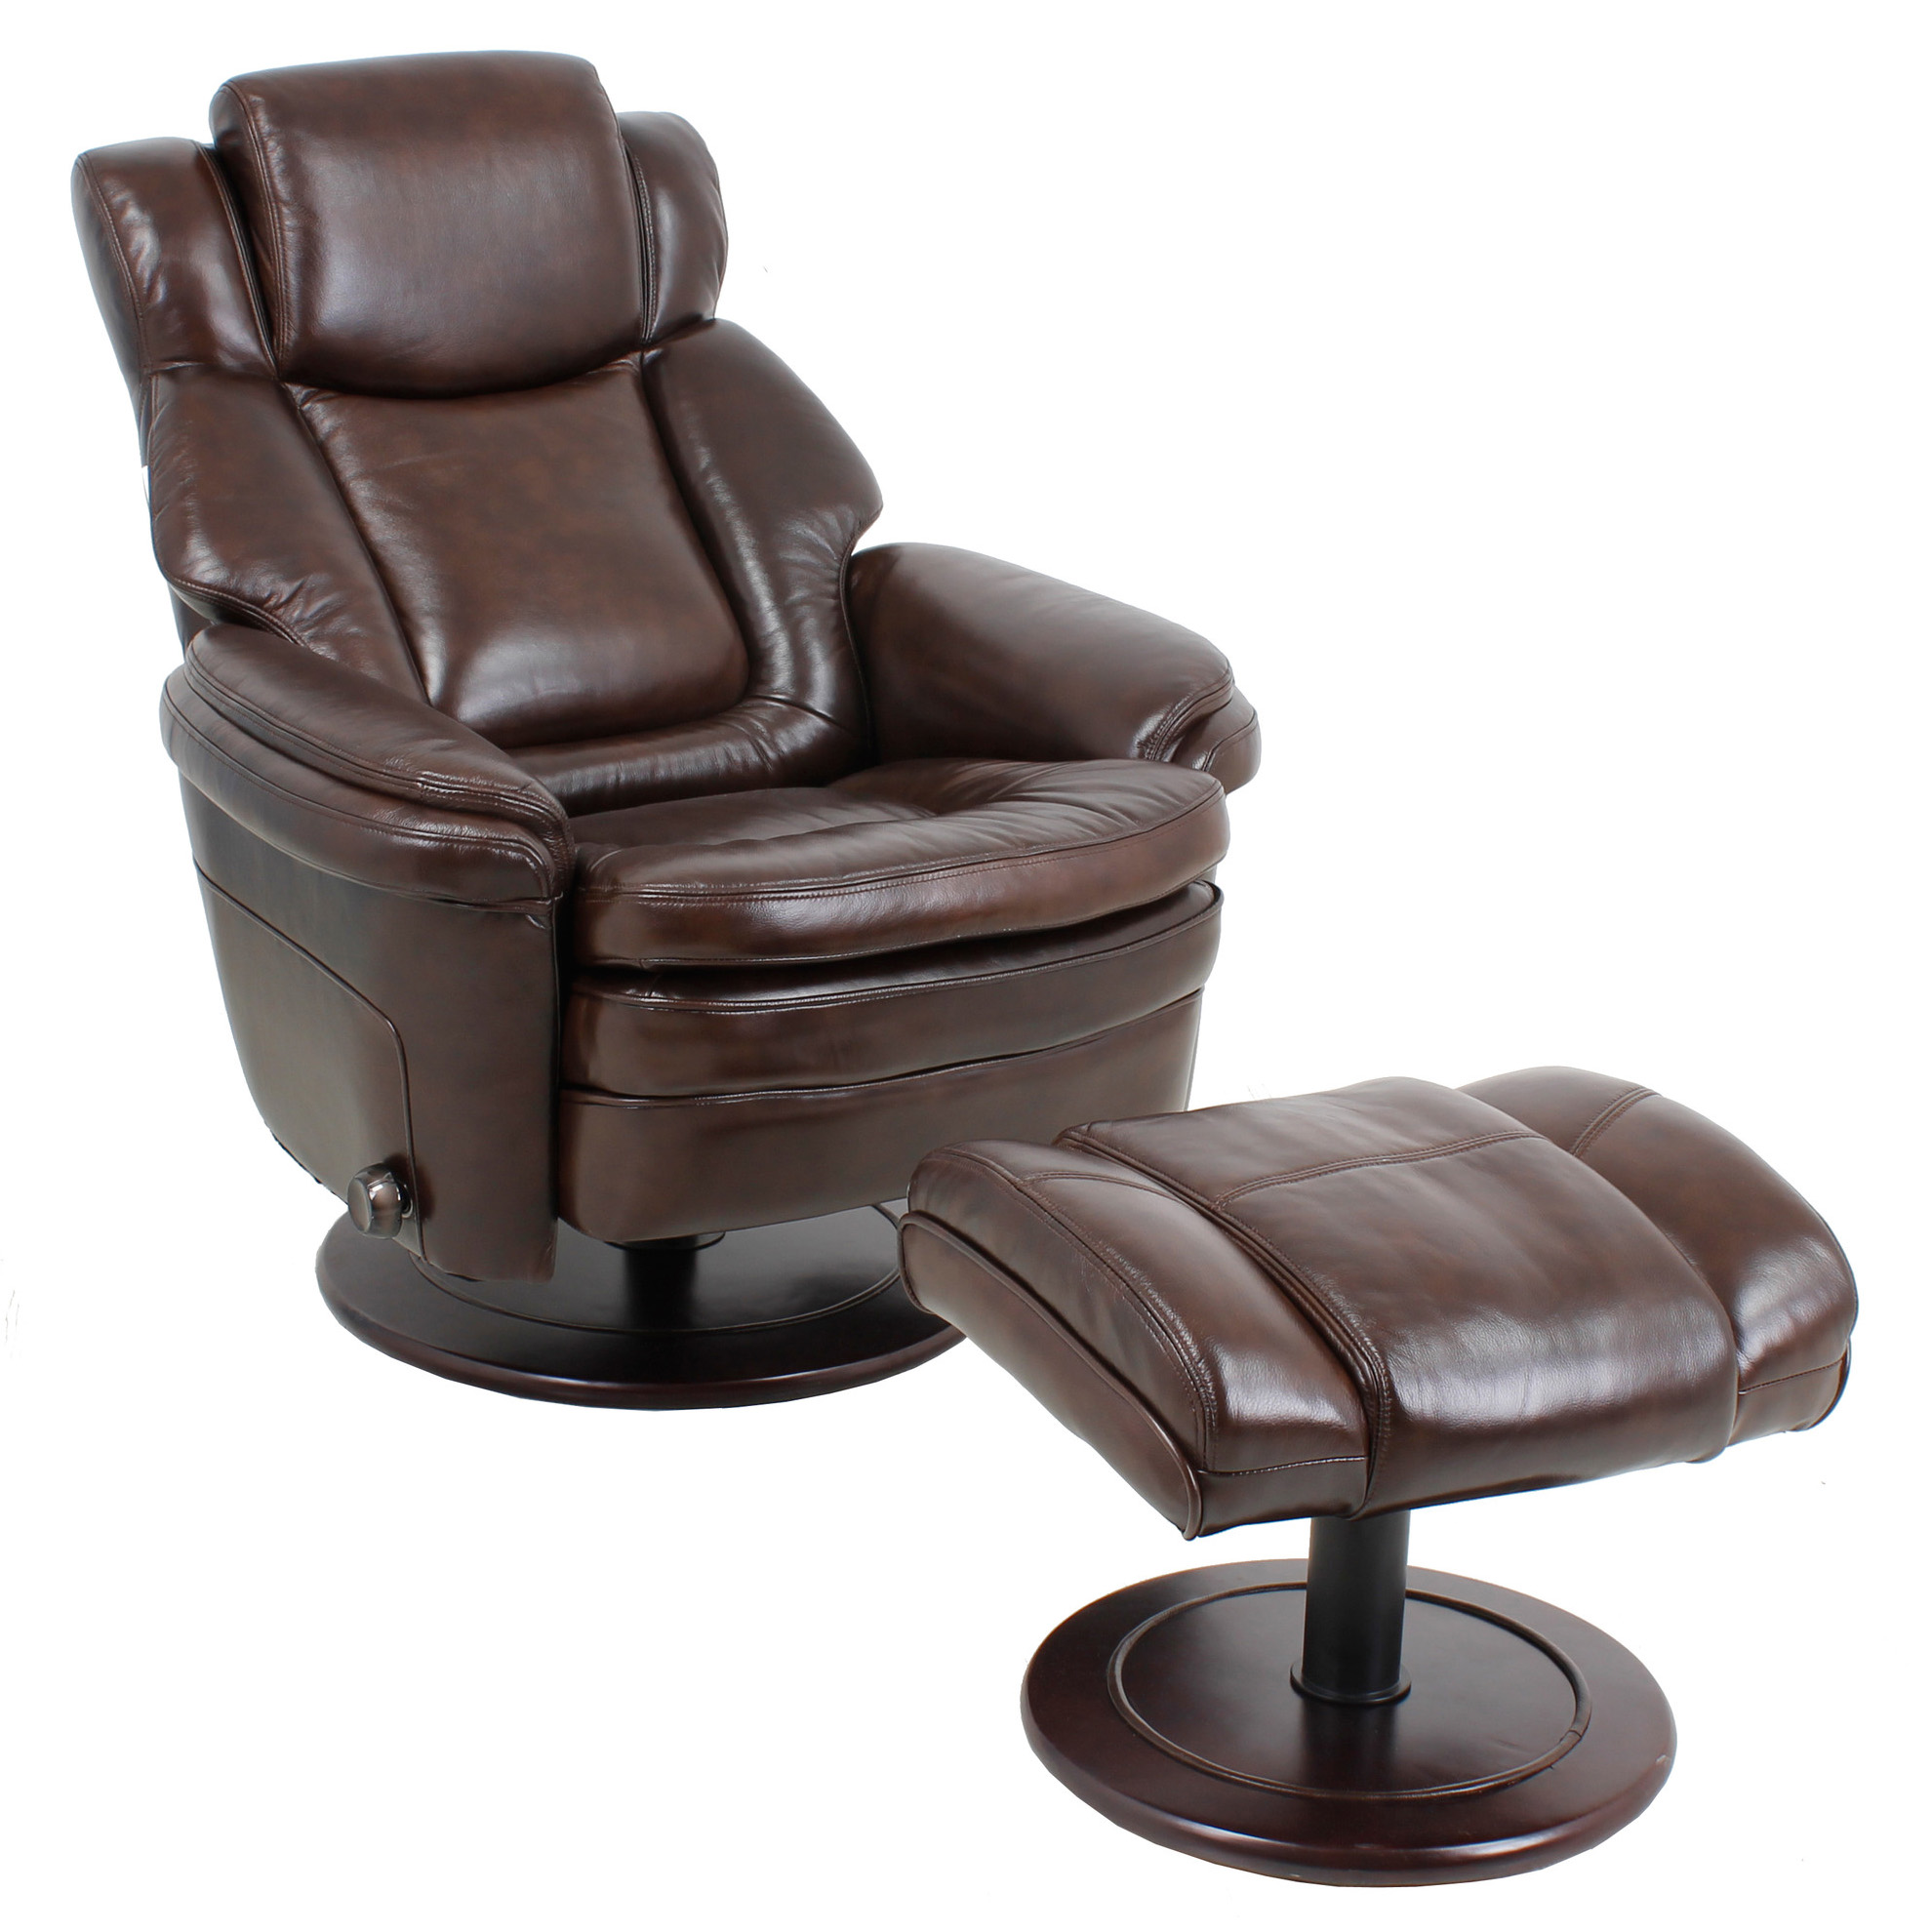 black charleston ottoman product cfm recliner barcalounger with back push hayneedle leather master